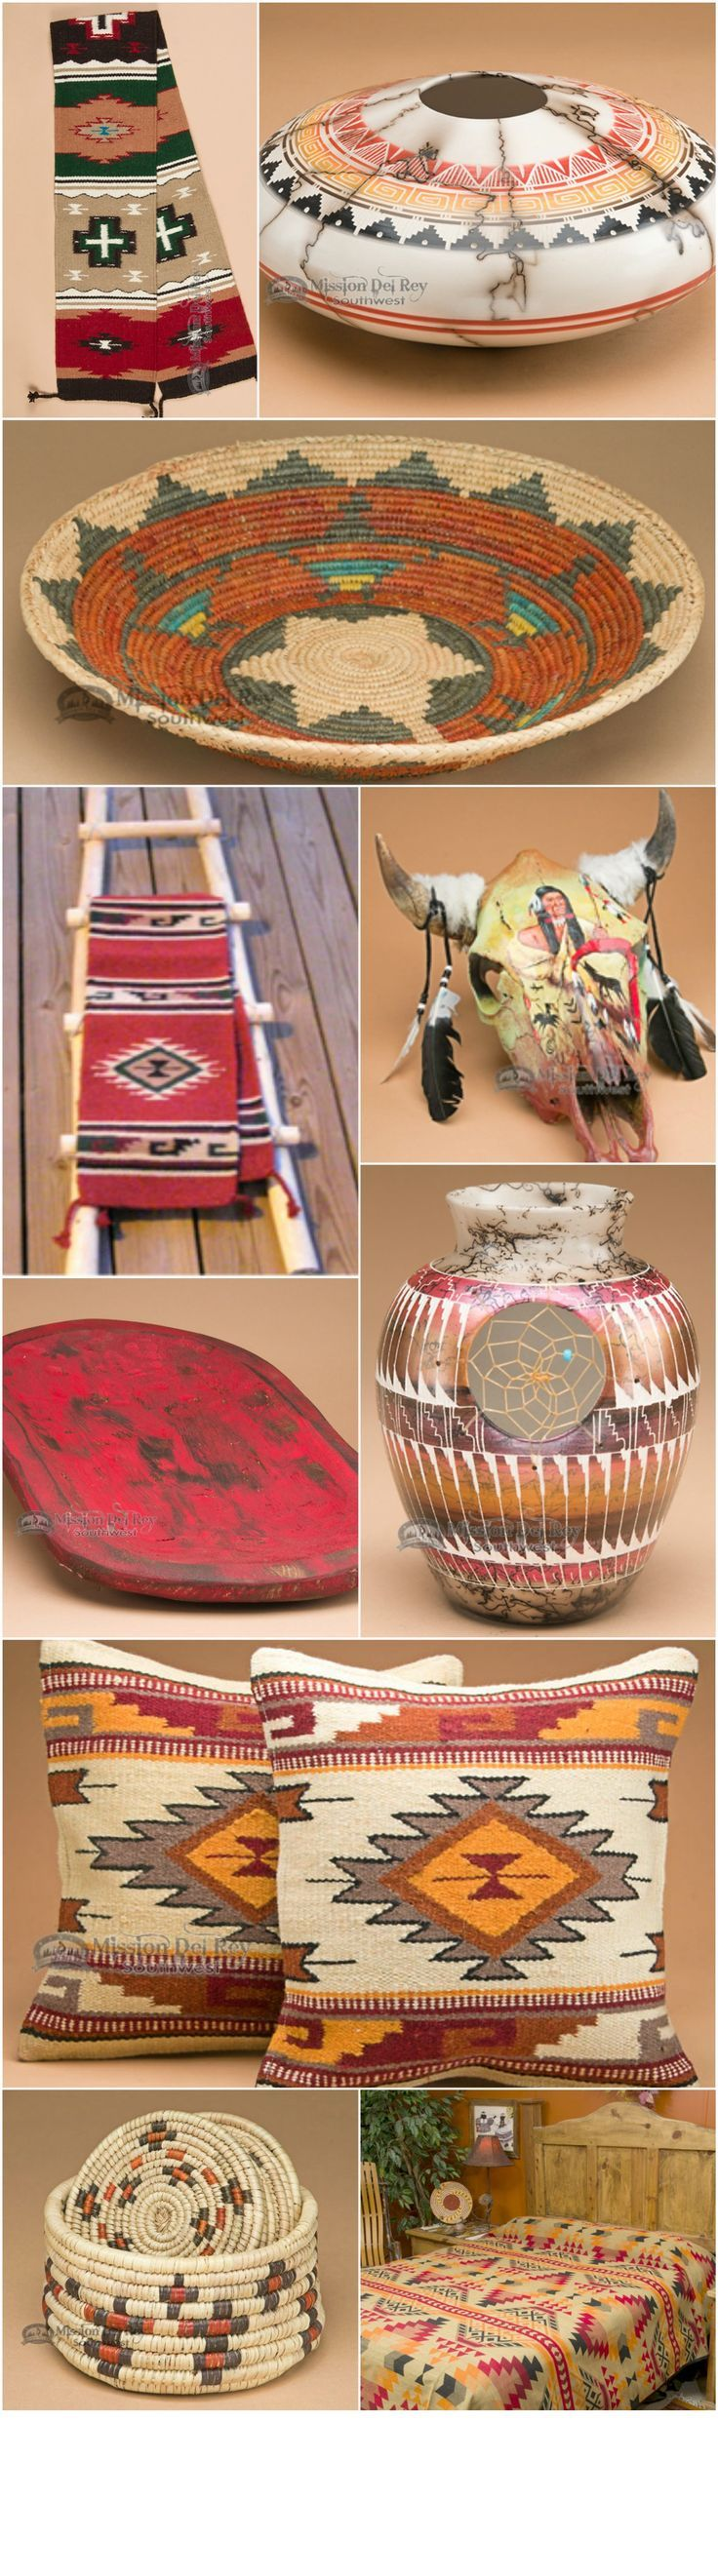 Southwest decor is a very popular style of home decorating. The beautiful colors and designs of southwest style are an easy way to give your home a designer look. If you like southwestern style decor, you will love our southwestern rugs, Native American pottery, rustic kiva ladders and southwest and western bedding. See our entire collection of southwest decor at http://www.missiondelrey.com/.